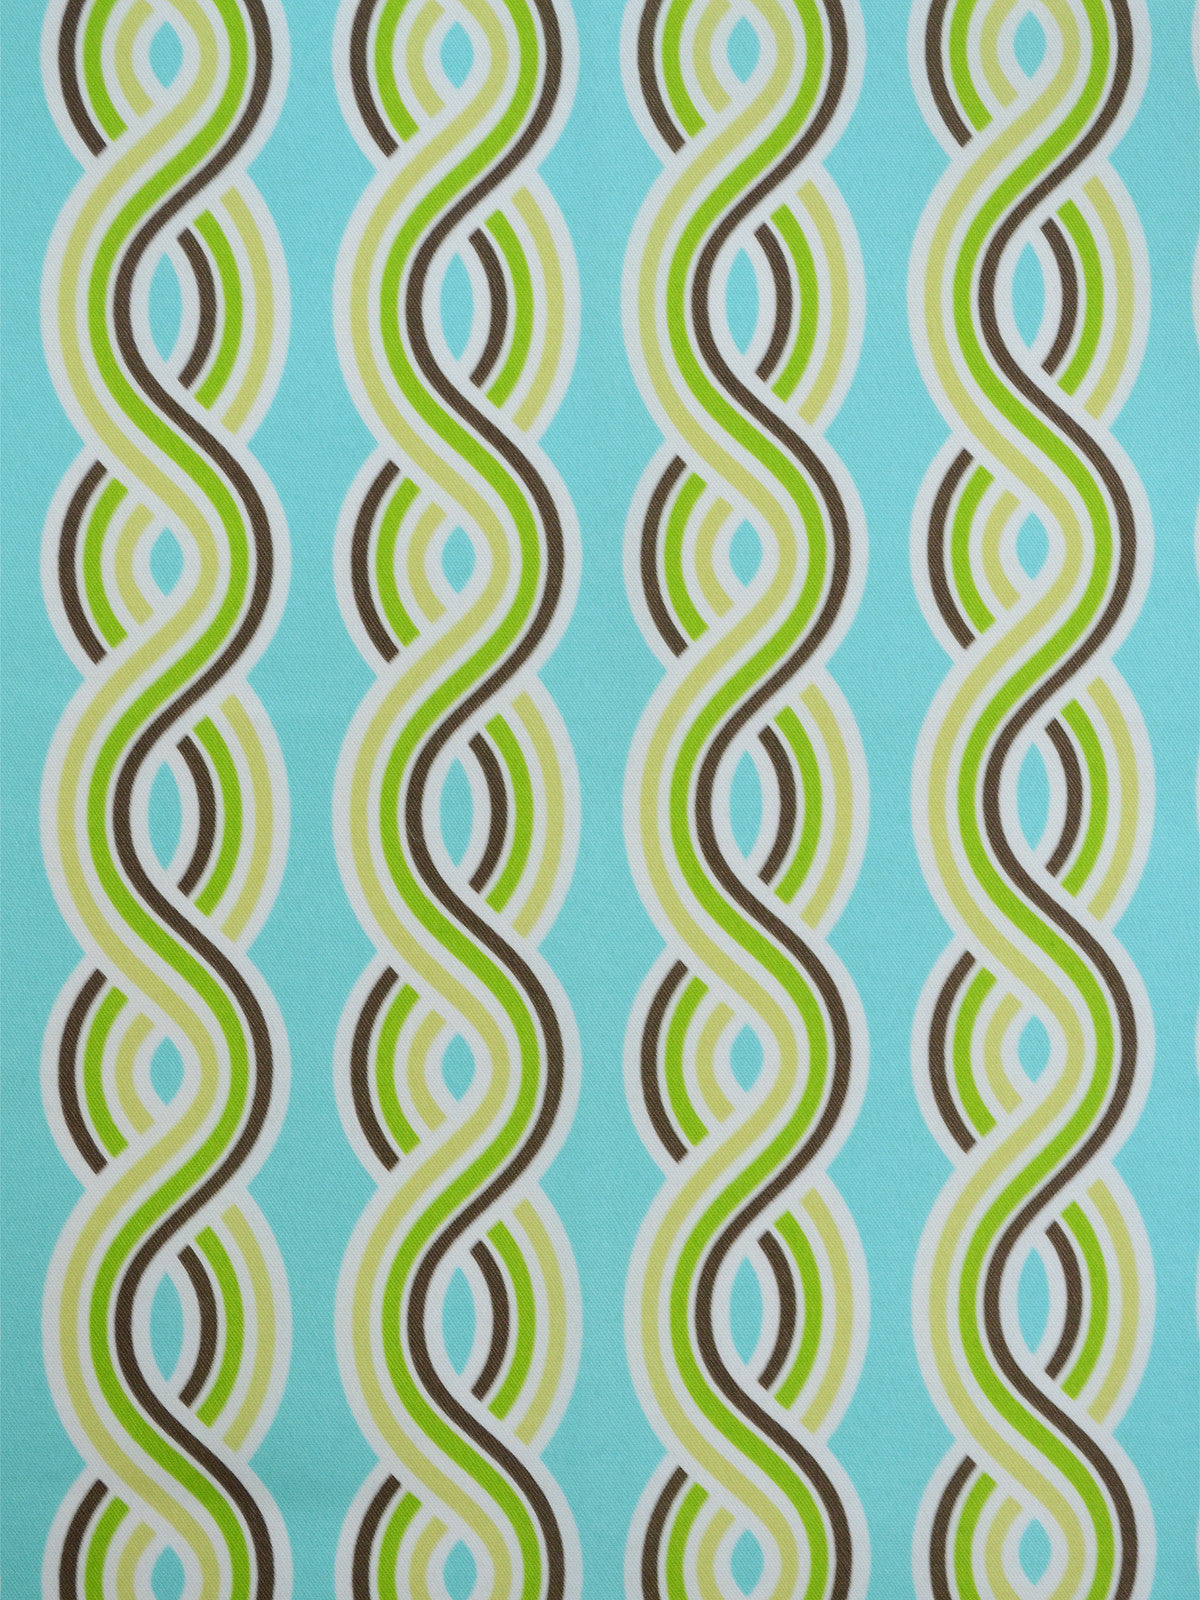 turquoise outdoor fabric, striped outdoor fabric, best atlanta fabric store